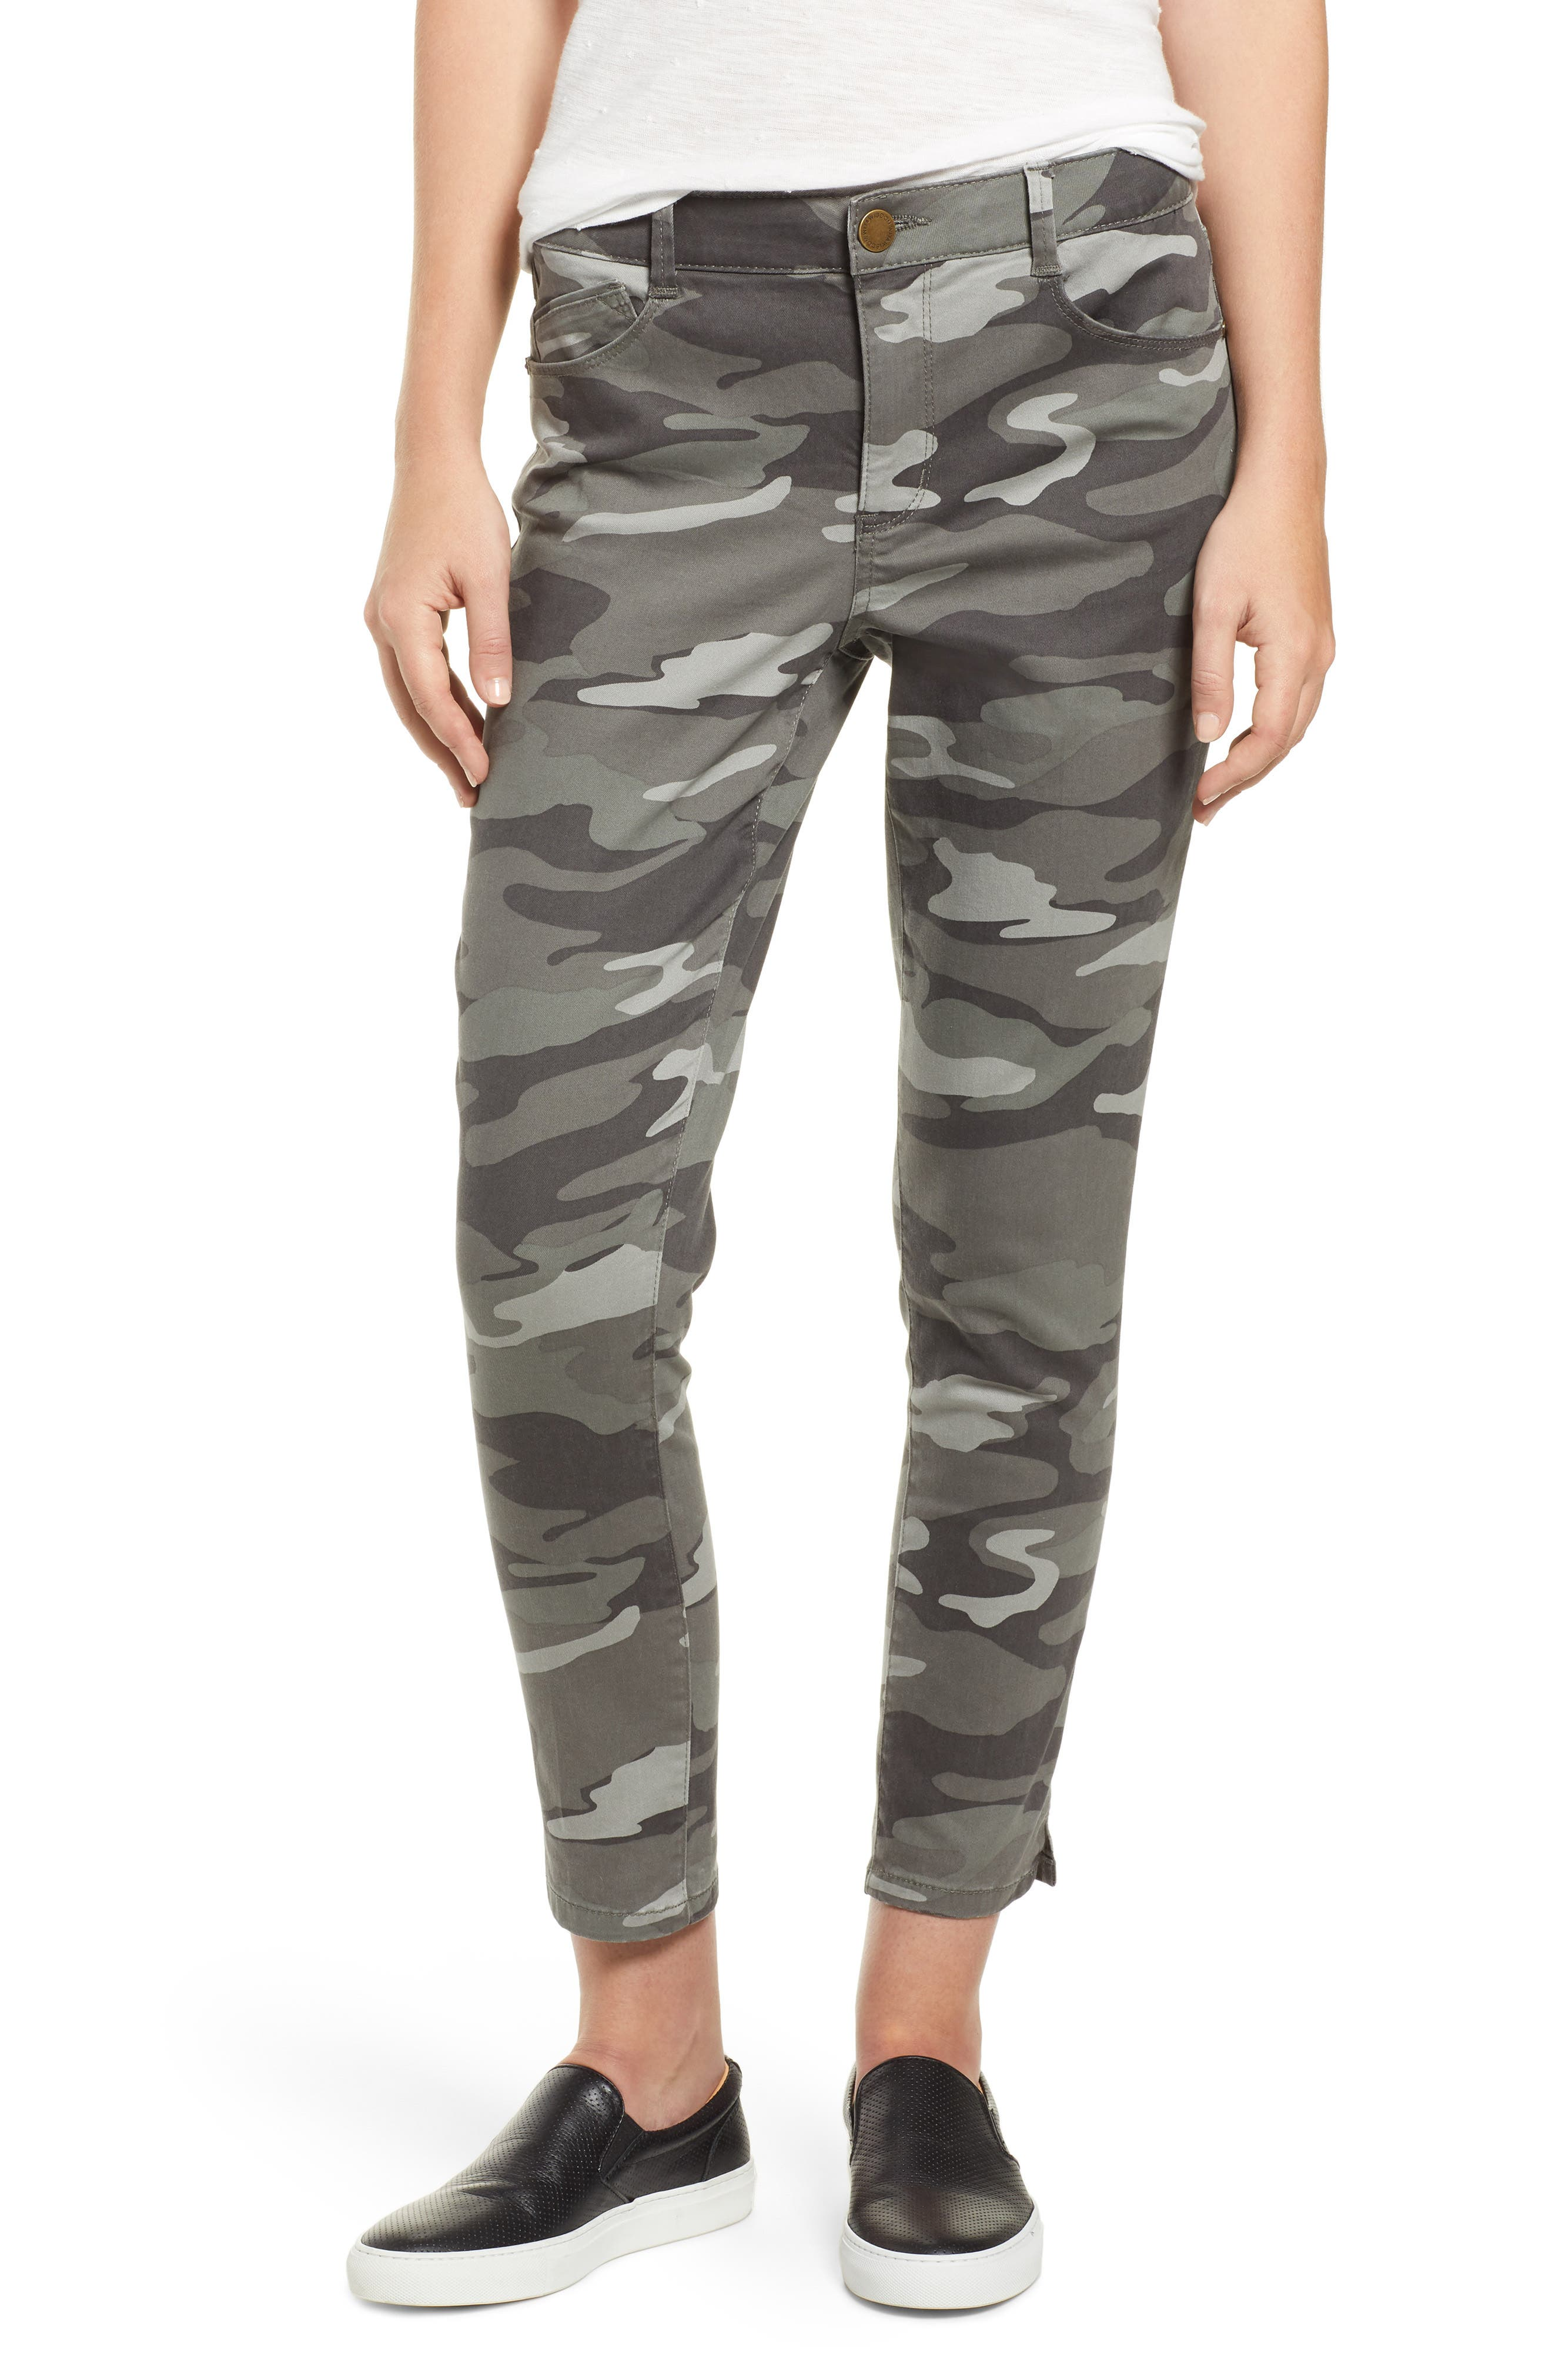 WIT & WISDOM, Ab-Solution Camo High Waist Ankle Skinny Pants, Main thumbnail 1, color, SAGE CAMO